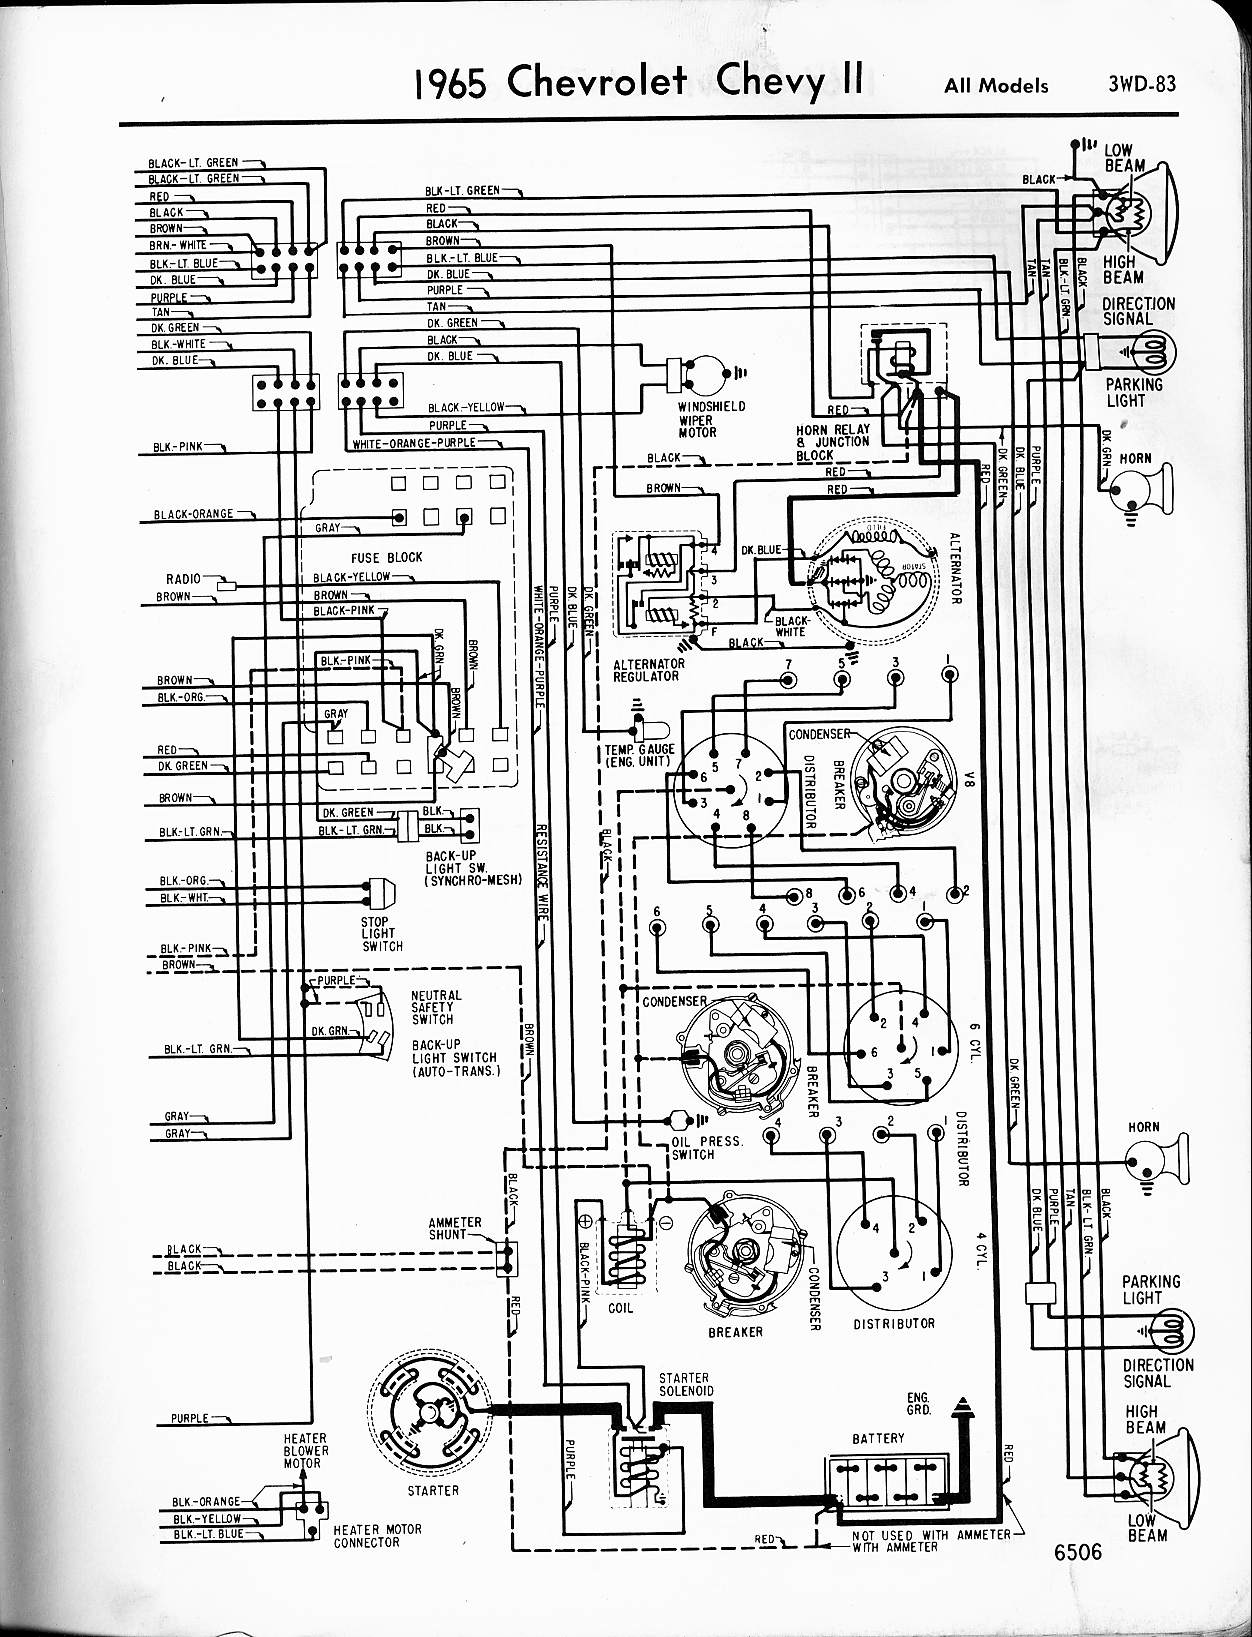 MWireChev65_3WD 083 66 chevelle wiring schematics free download diagram schematic 1966 chevy nova wiring diagram at edmiracle.co